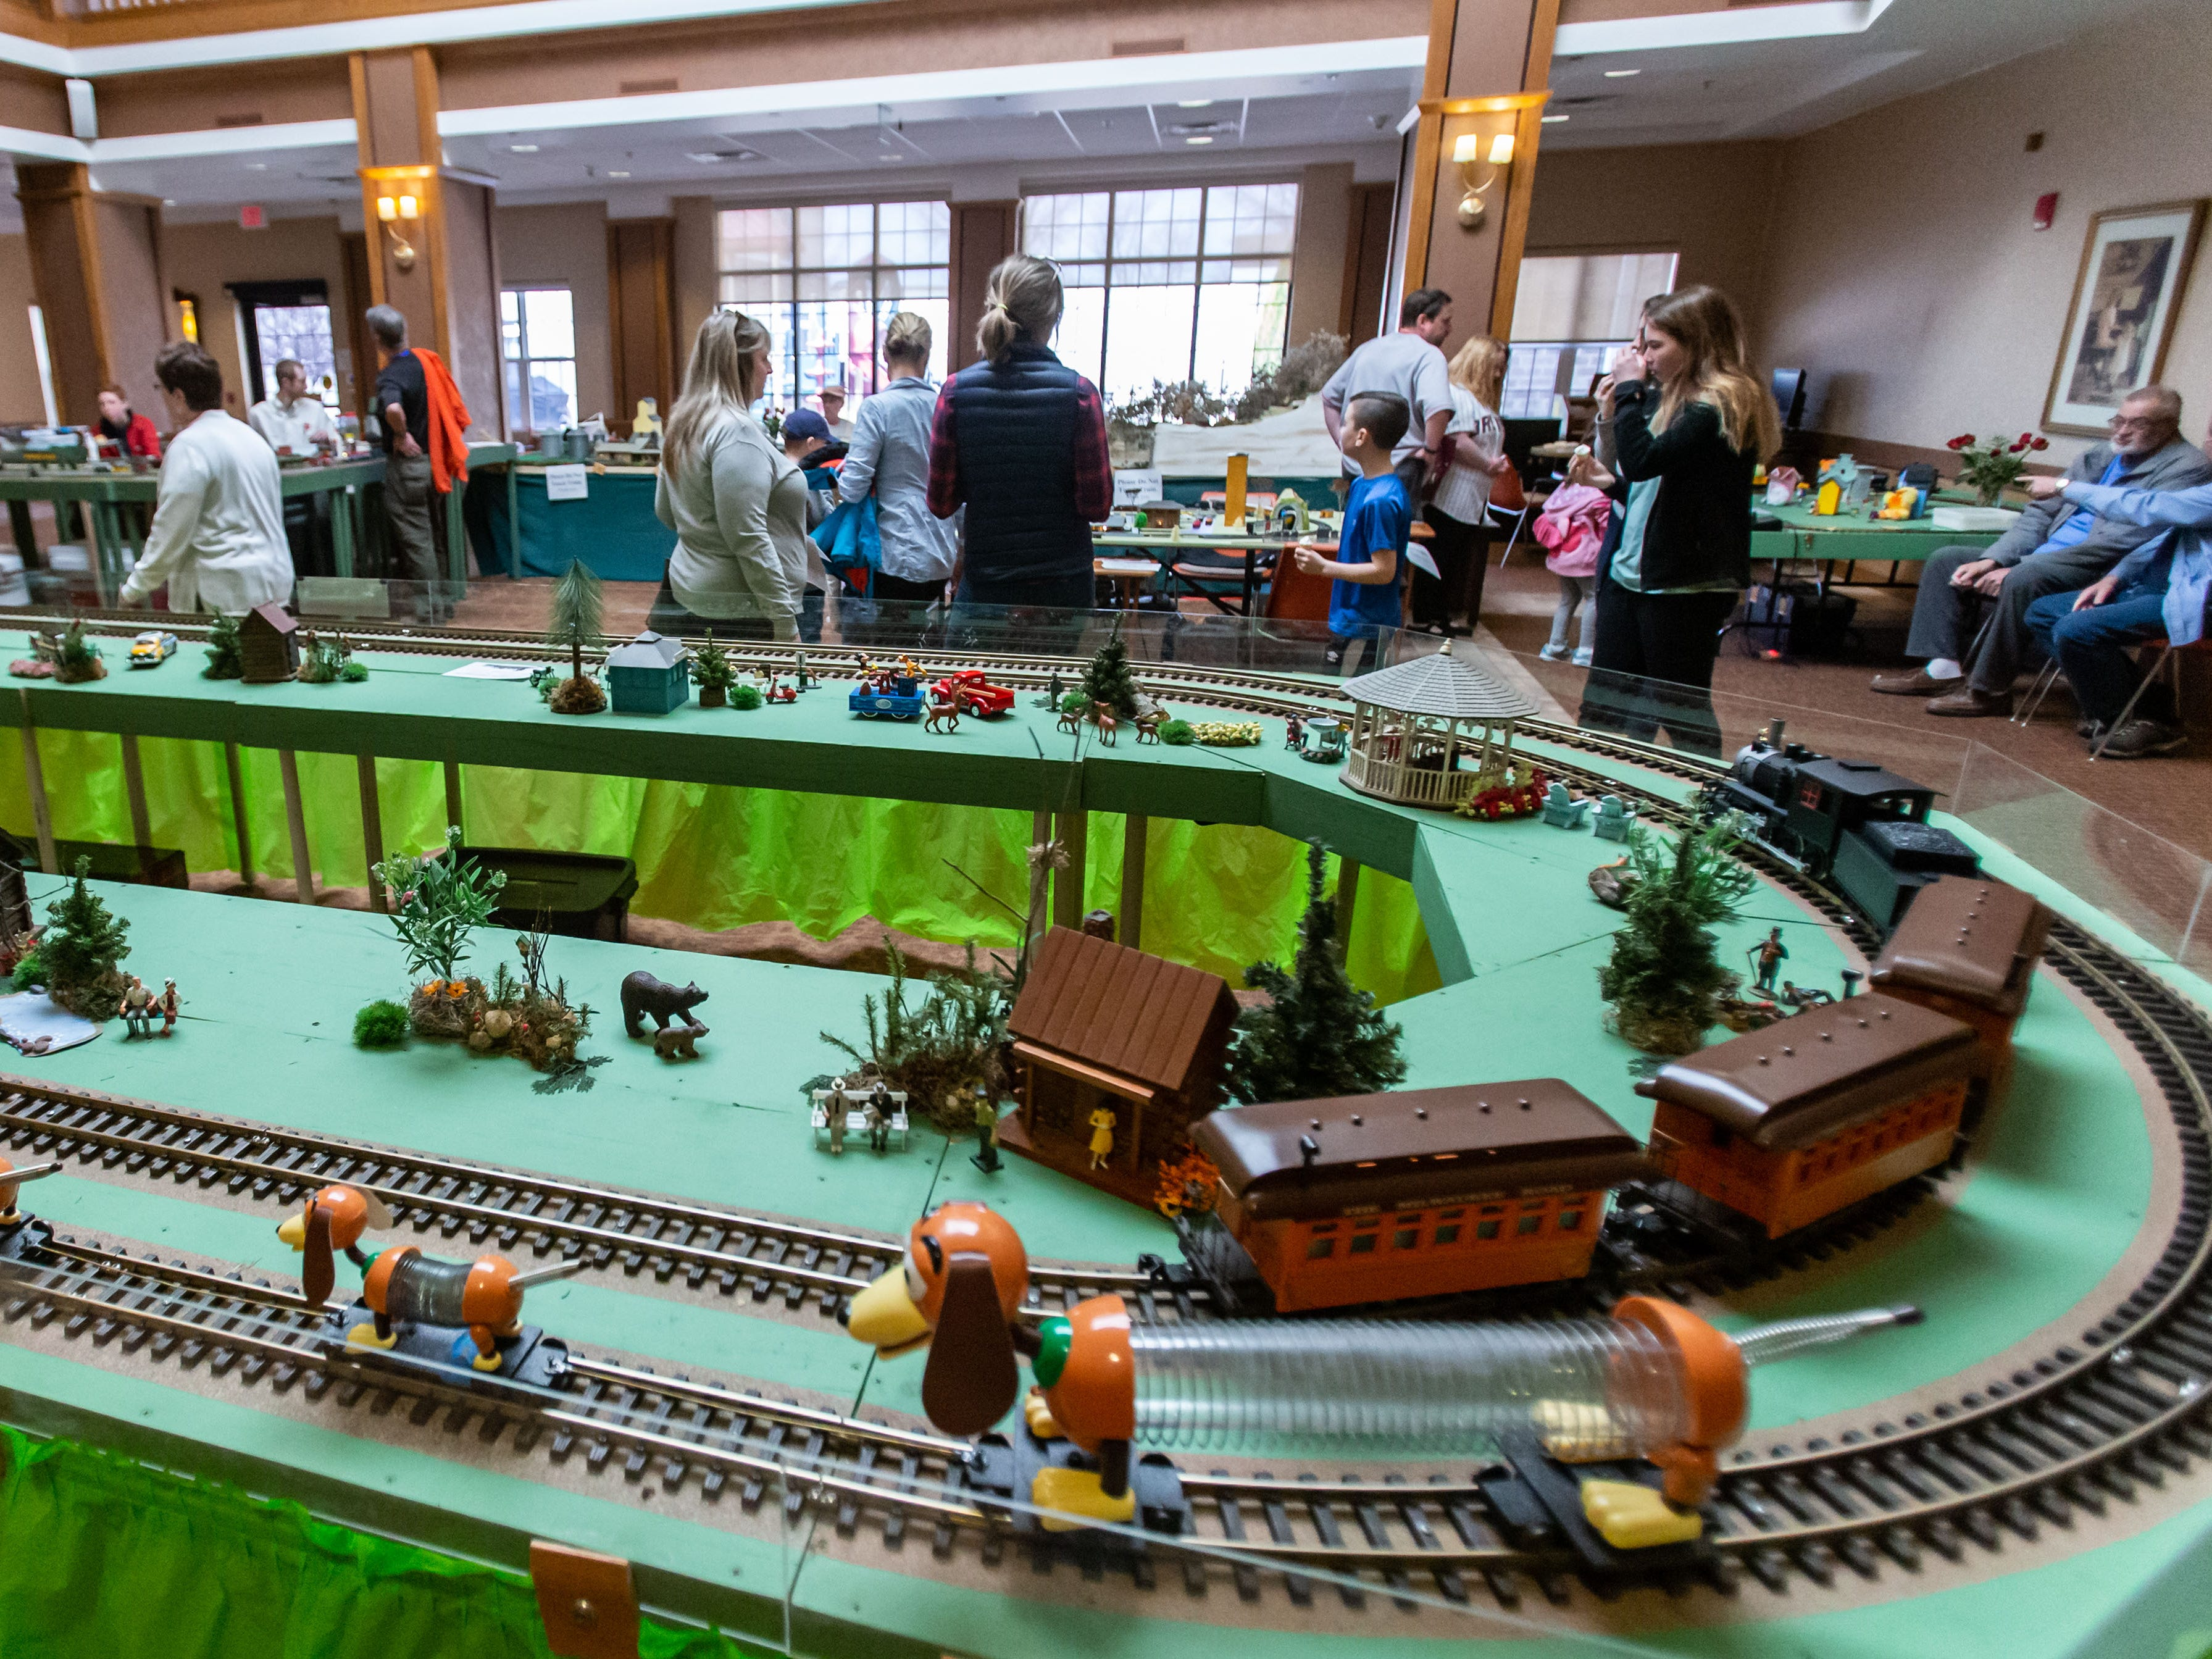 Residents and visitors enjoy the Trains, Tracks and Switches exhibit at Shorehaven Health and Rehabilitation Center in Oconomowoc on Thursday, March 28, 2019. The annual three-day event, inspired by lead engineer and former Shorehaven resident Mert Leet, features model diesel and steam engine train sets and railroad memorabilia.